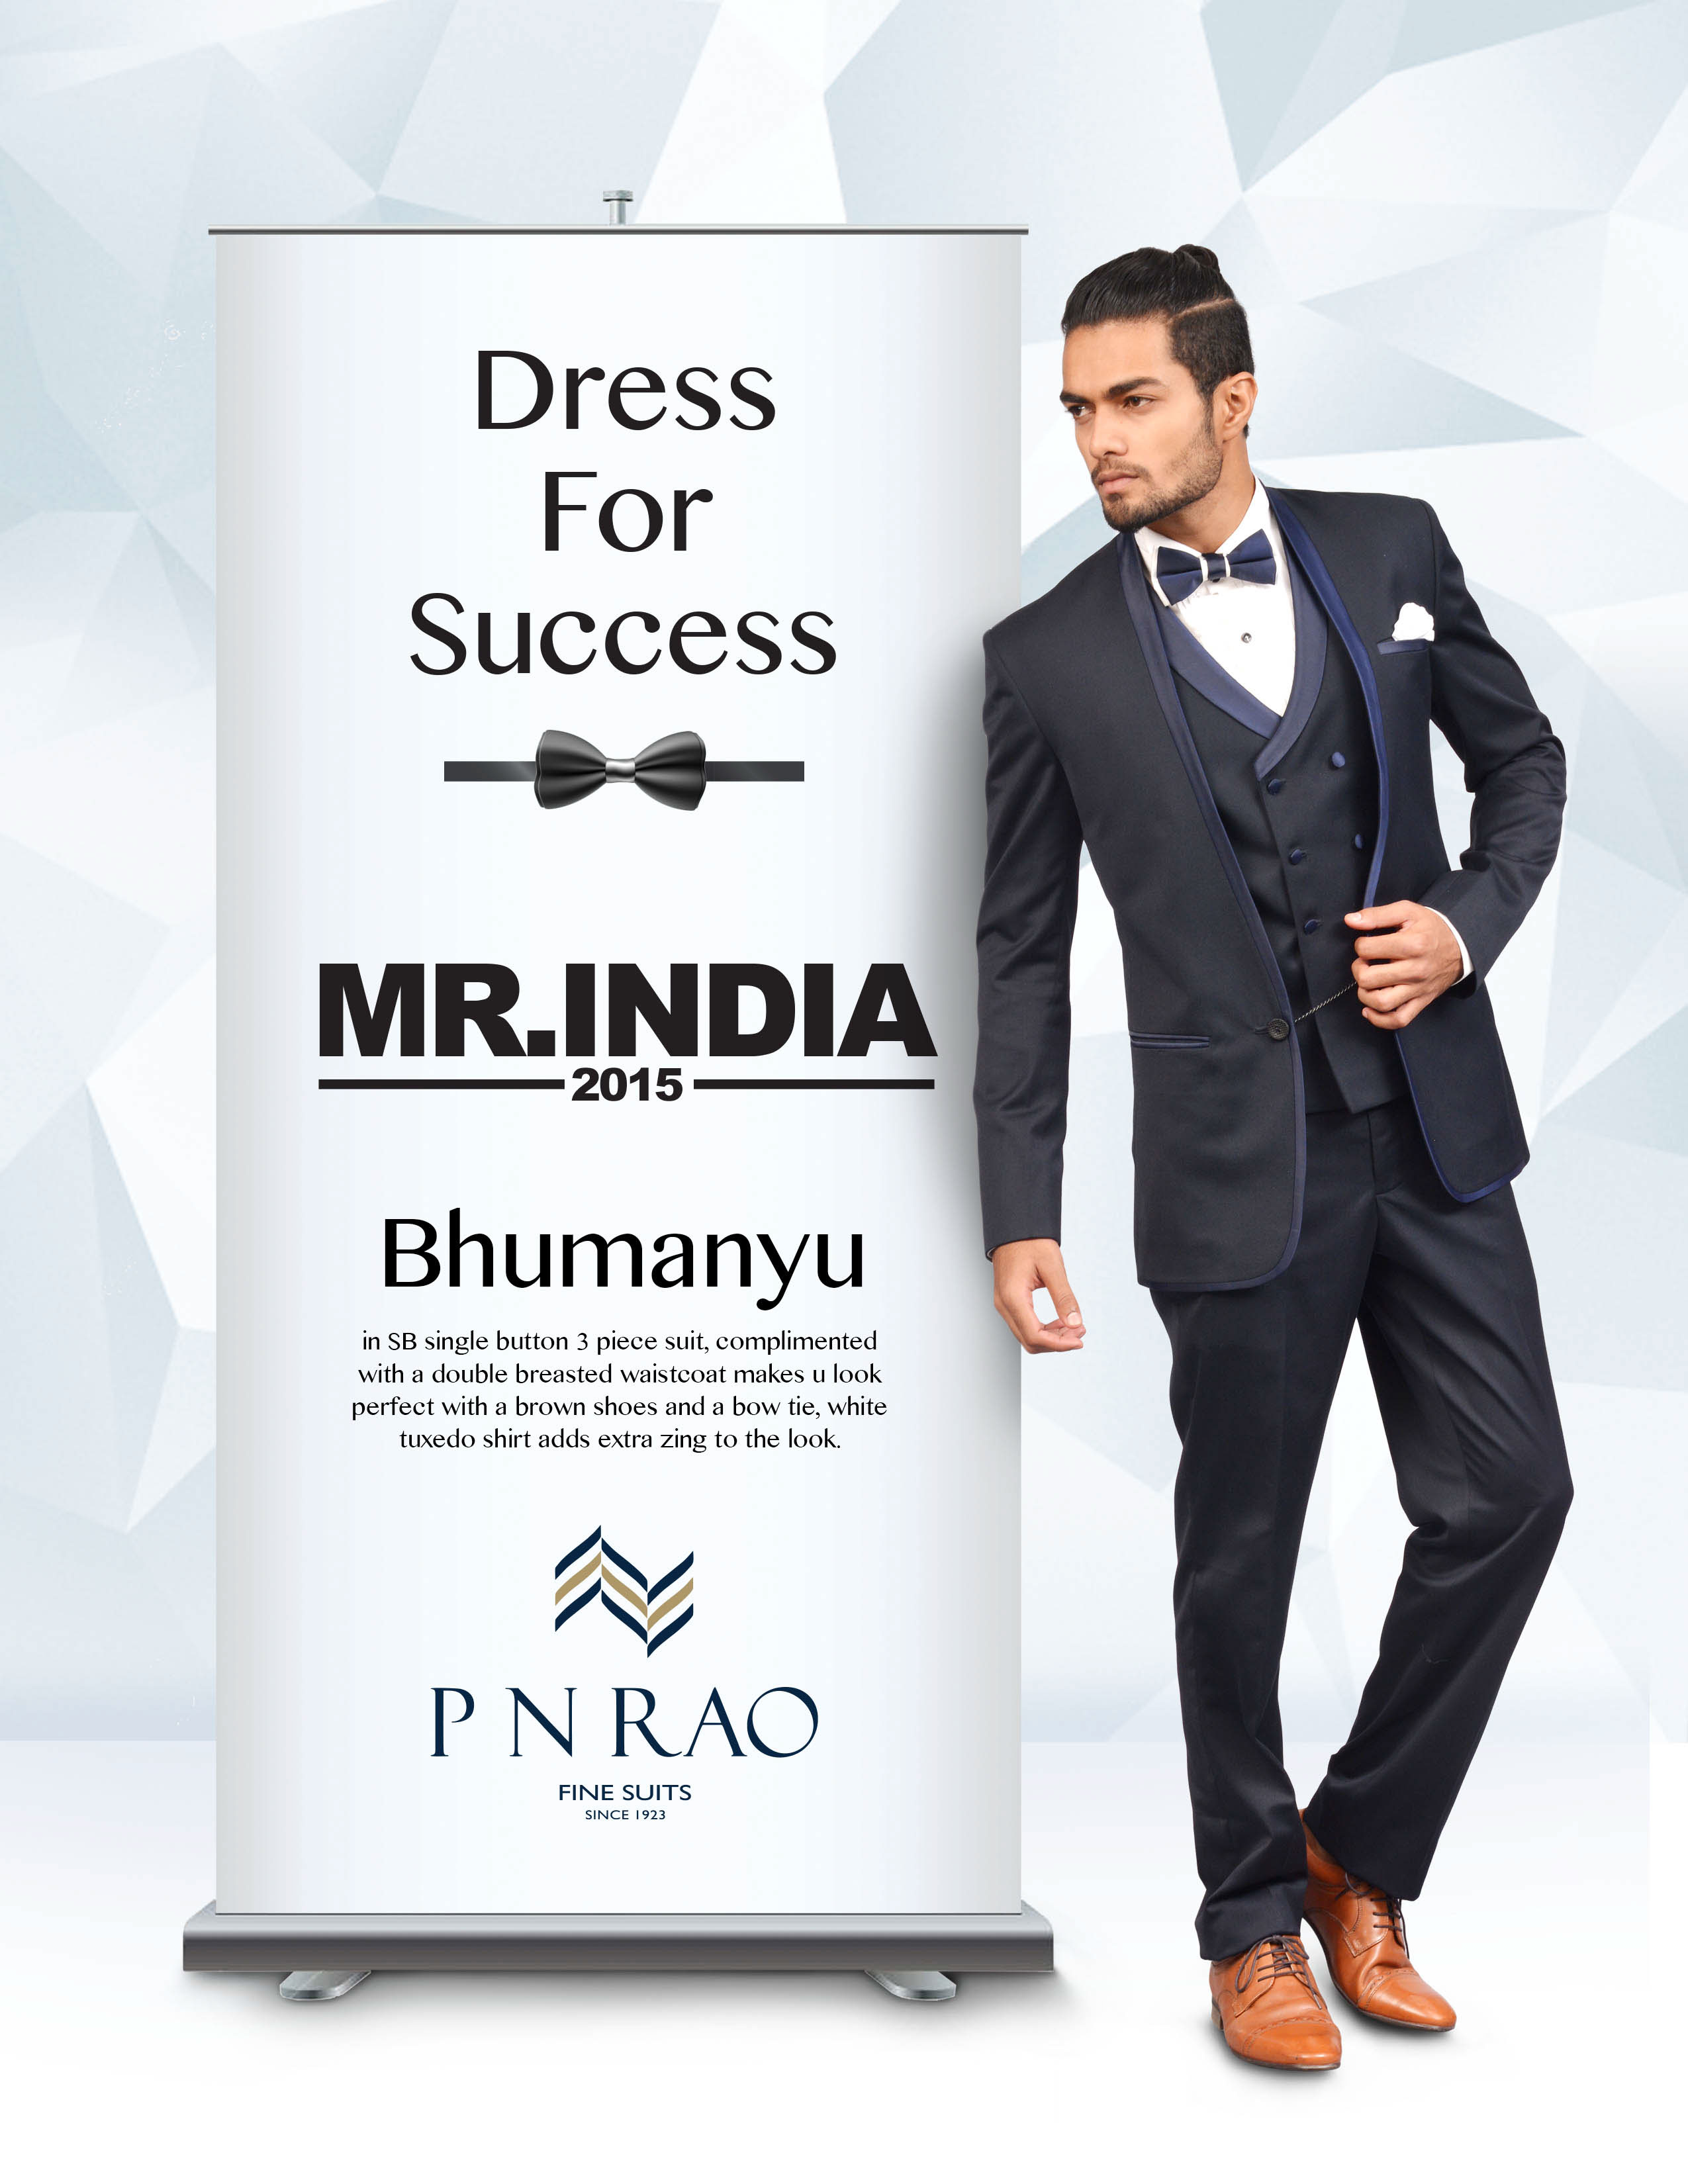 pn rao dress for success campaign shoot on behance